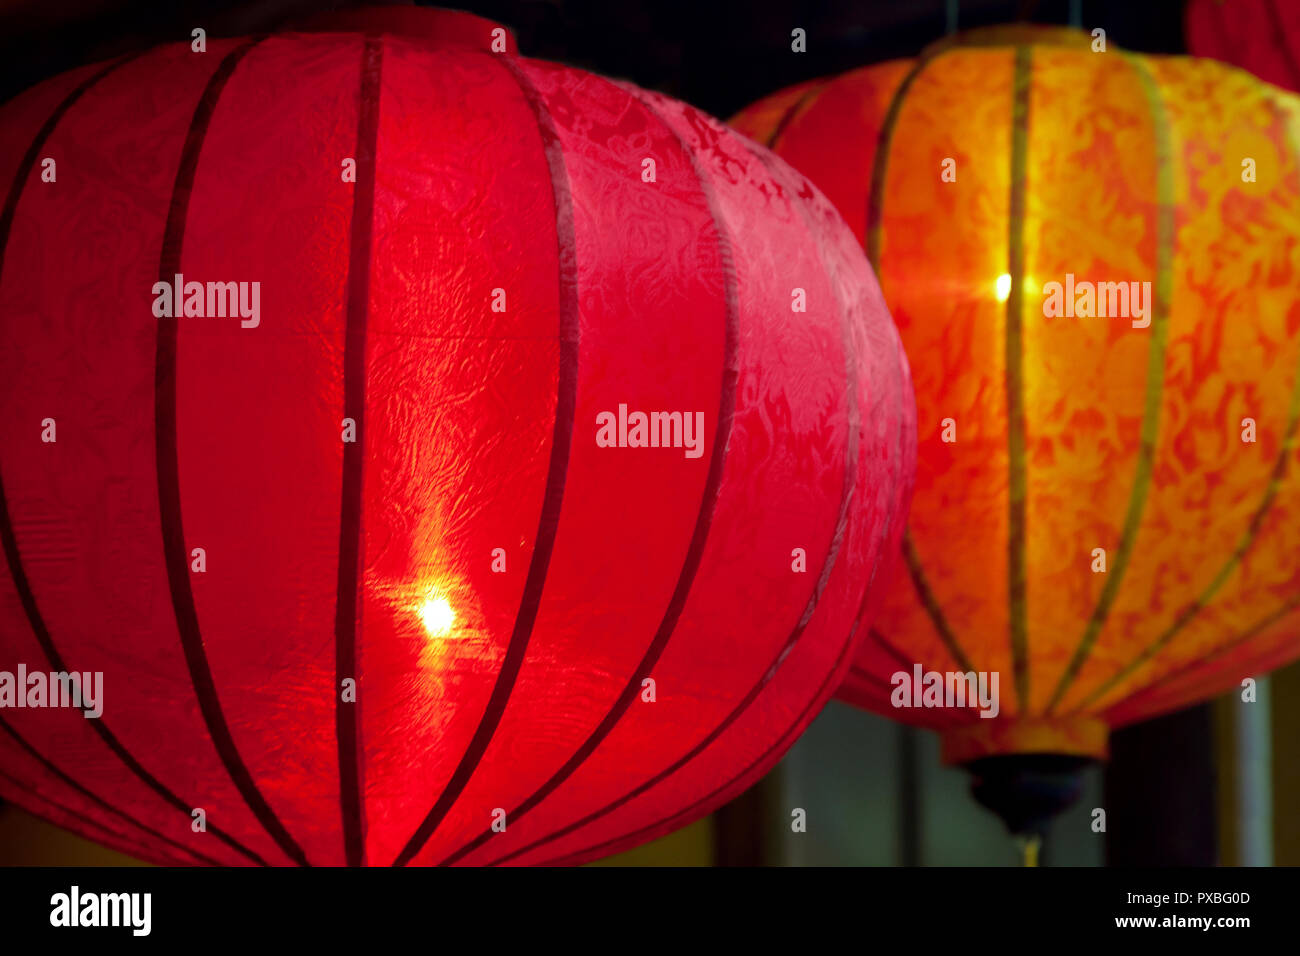 Glowing Red Decorative Chinese Lanterns Side View Stock